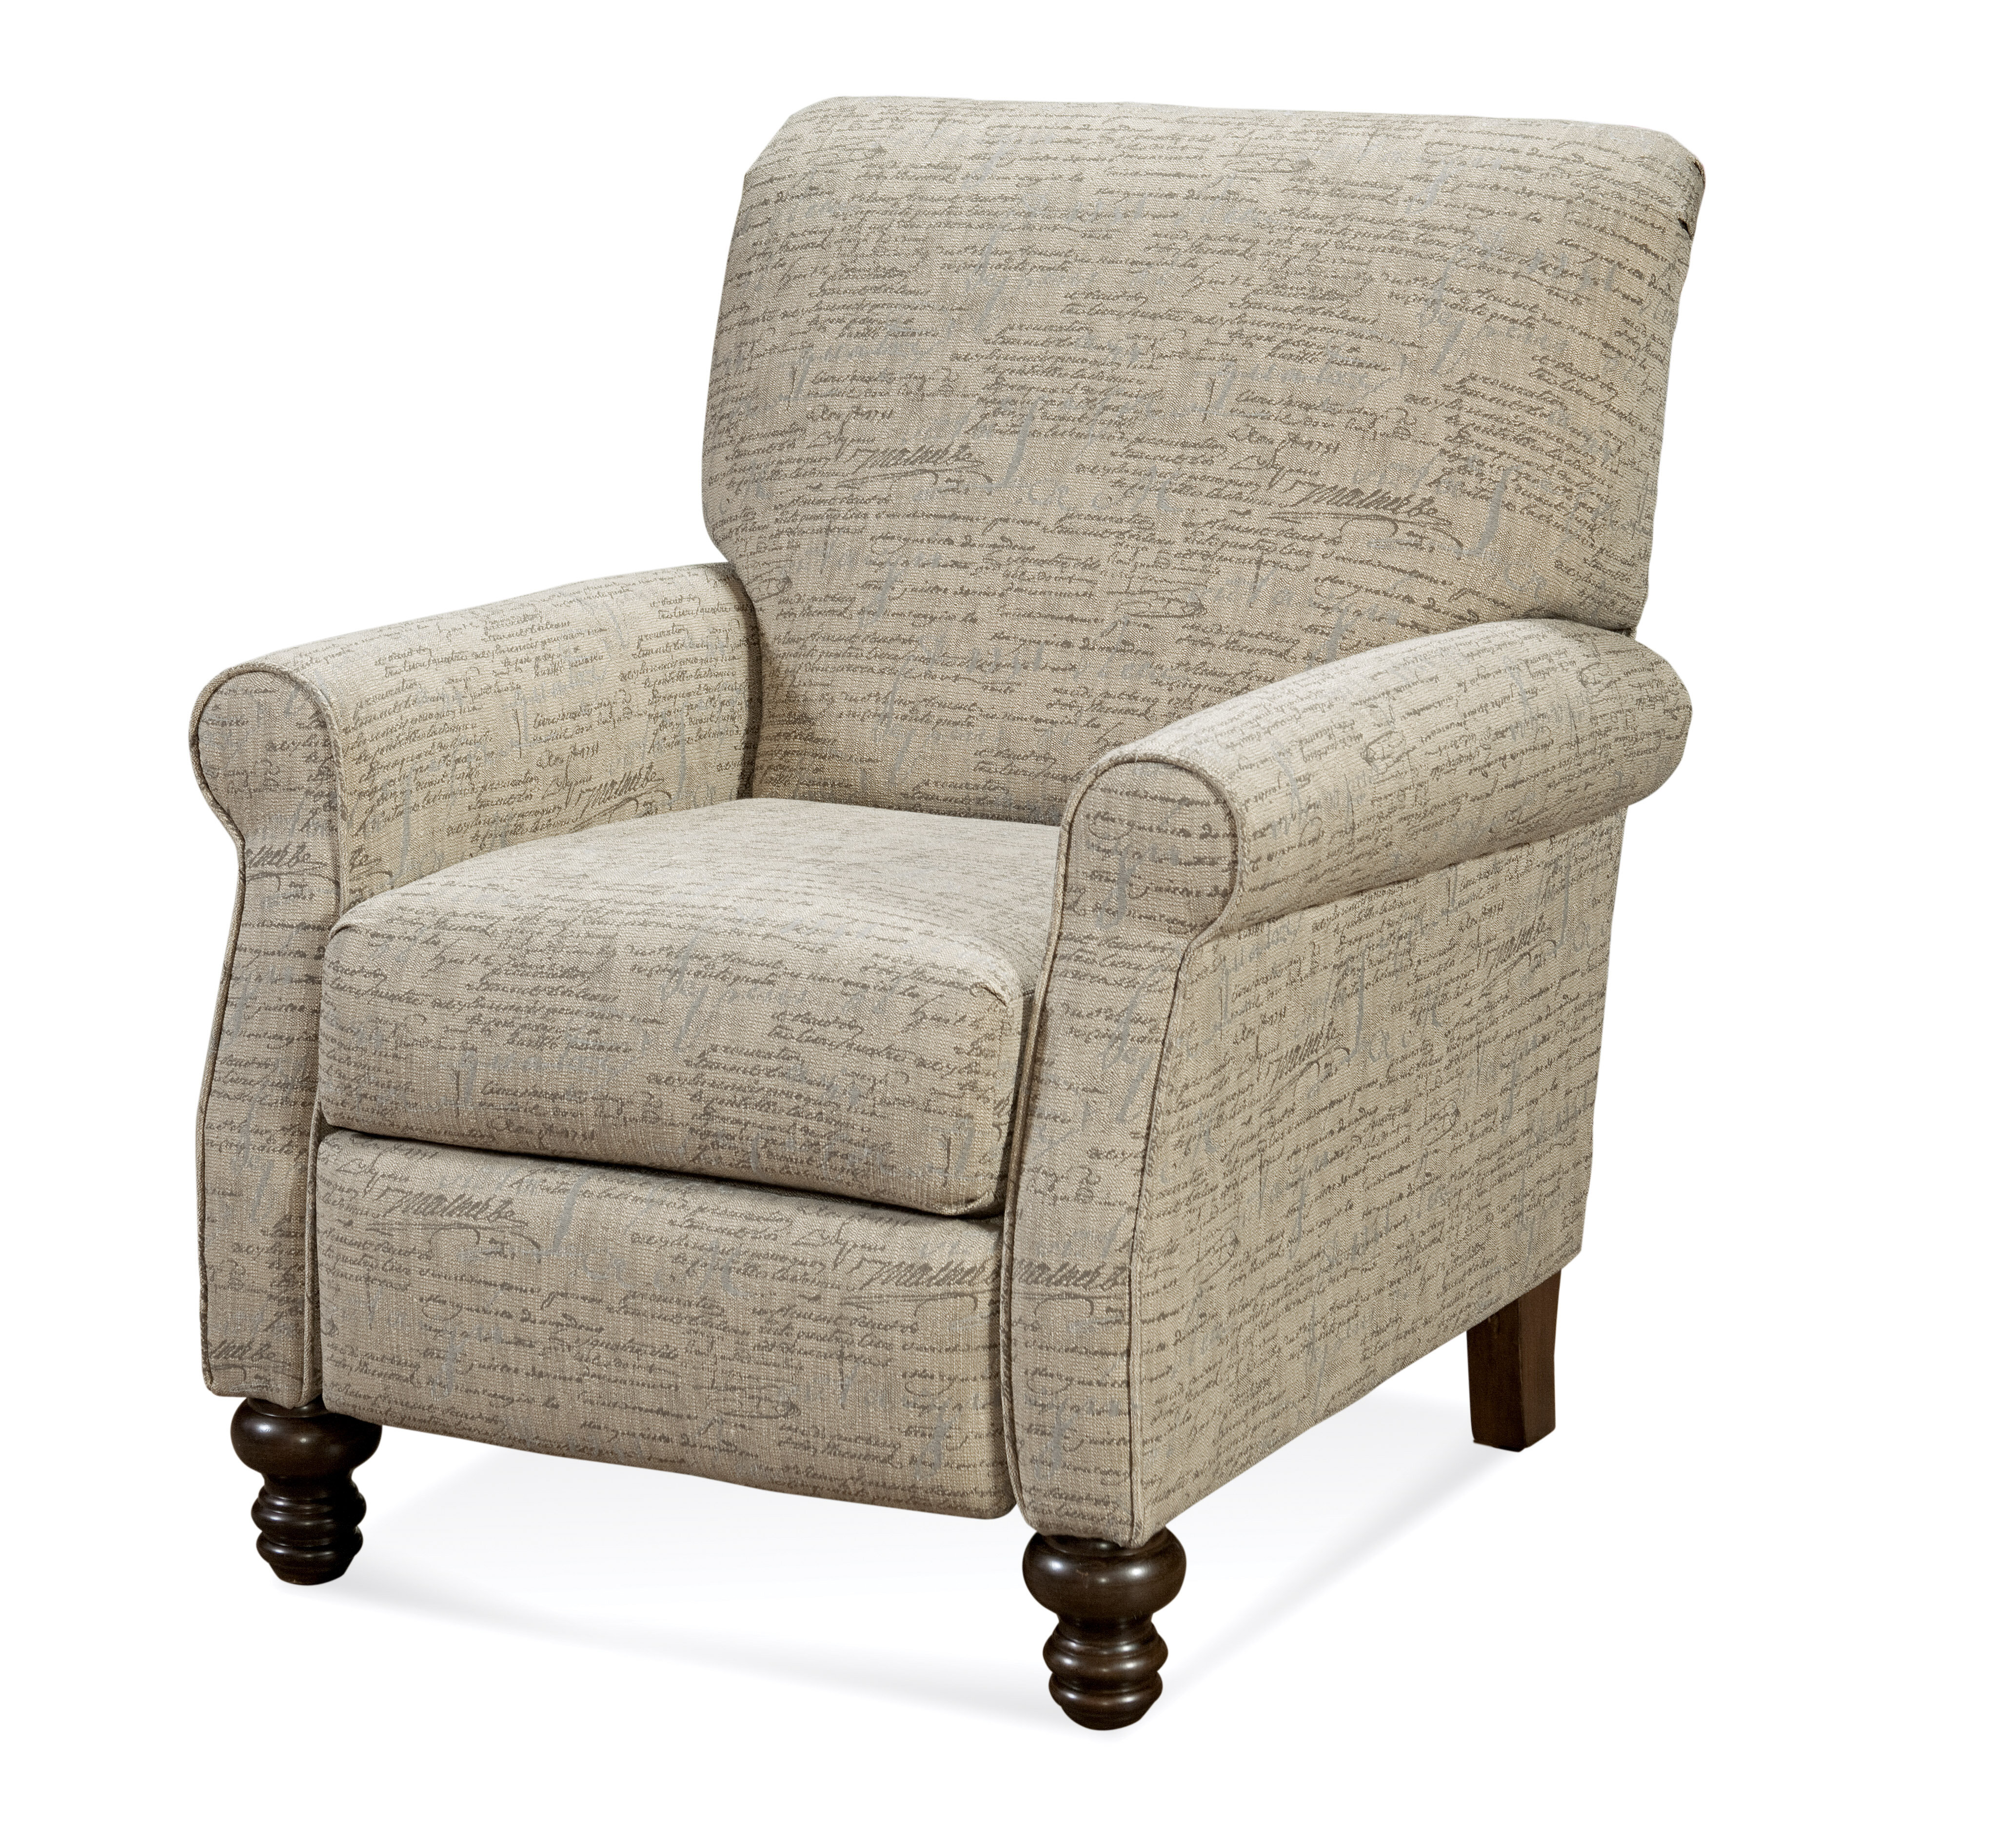 look fabric in recliner lannister lane leg to shown for weeks fabrics ship ready low below additional you choose the